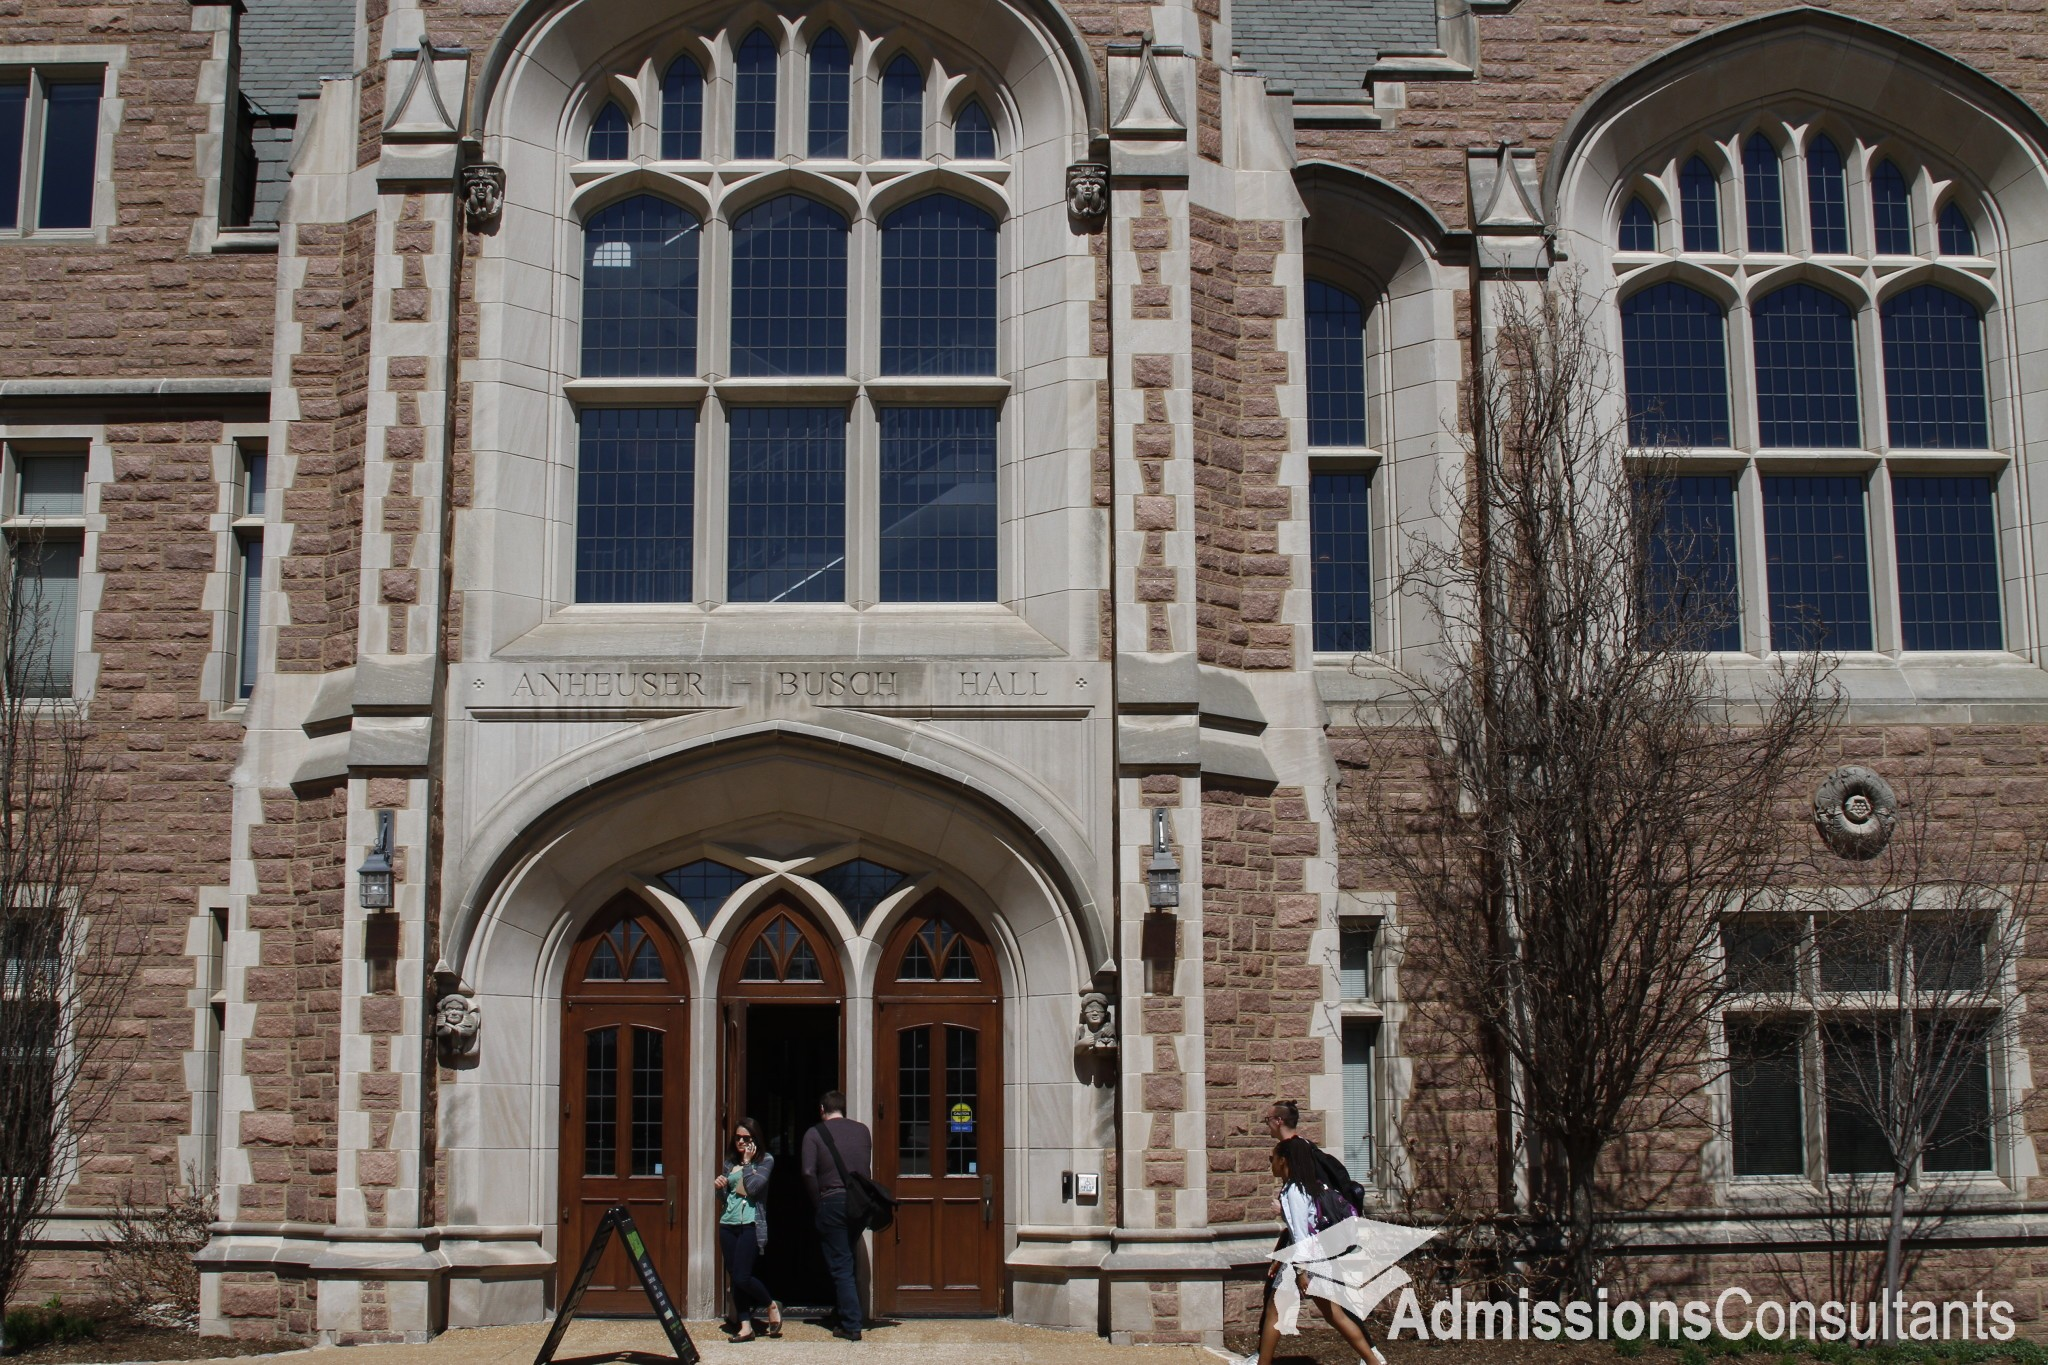 Washington University law school admission